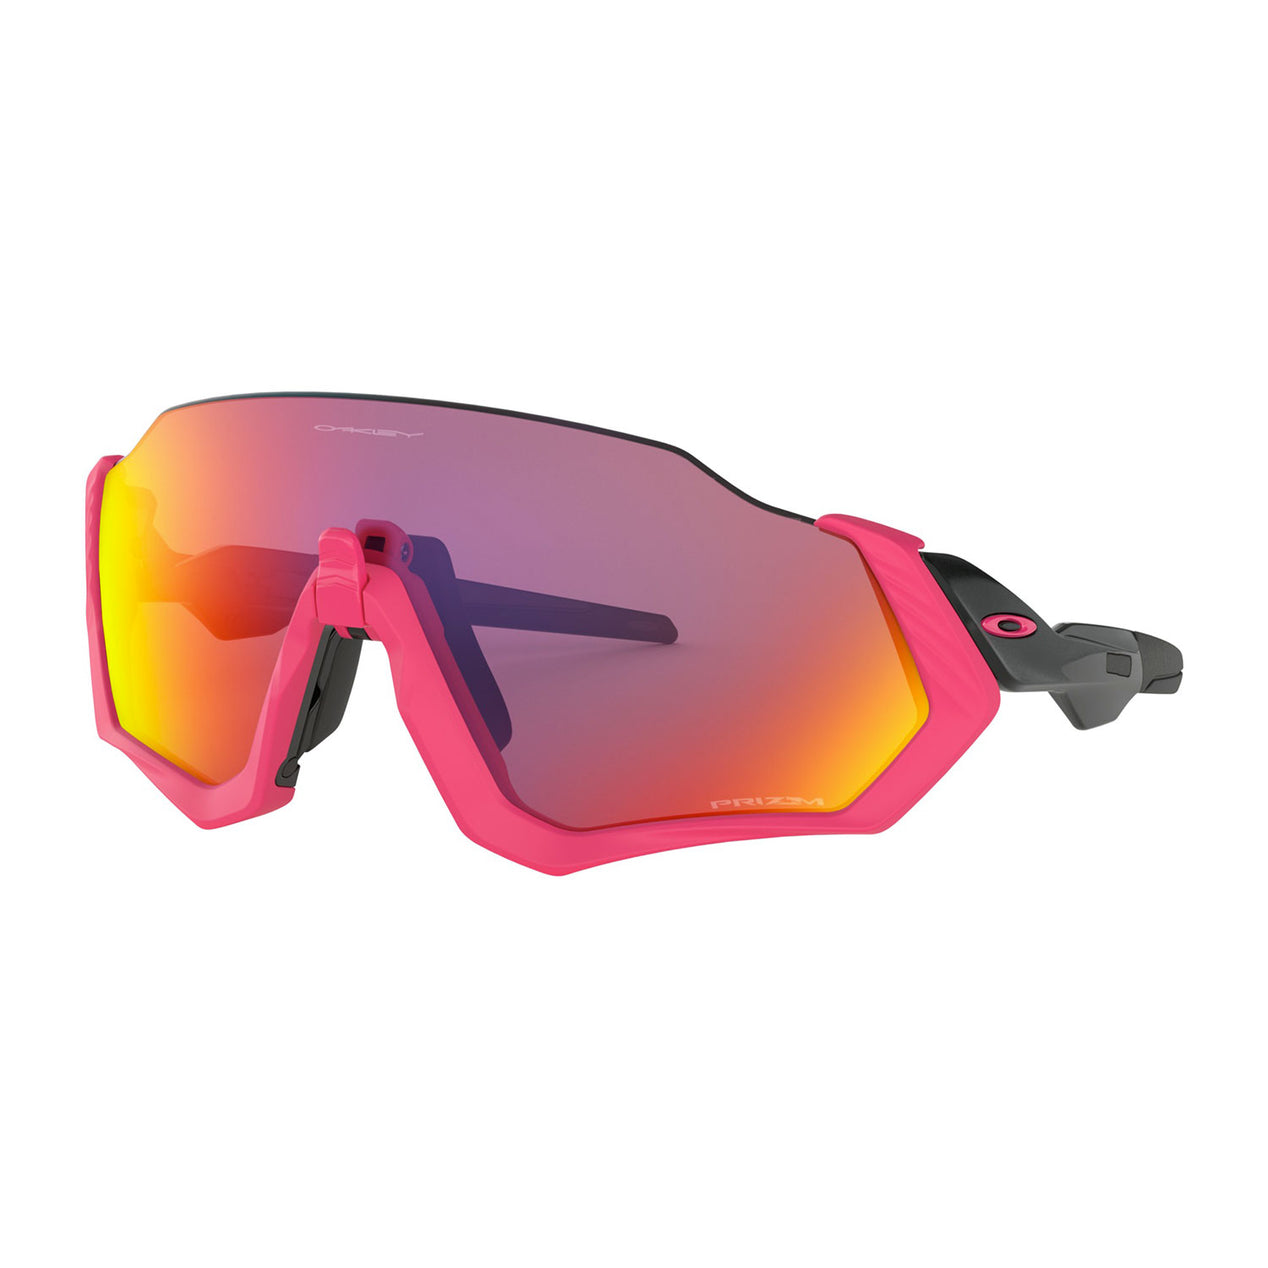 7e9fd01948344 Oakley Flight Jacket - Polished Black Neon Pink - Prizm Road Lens Sunglasses